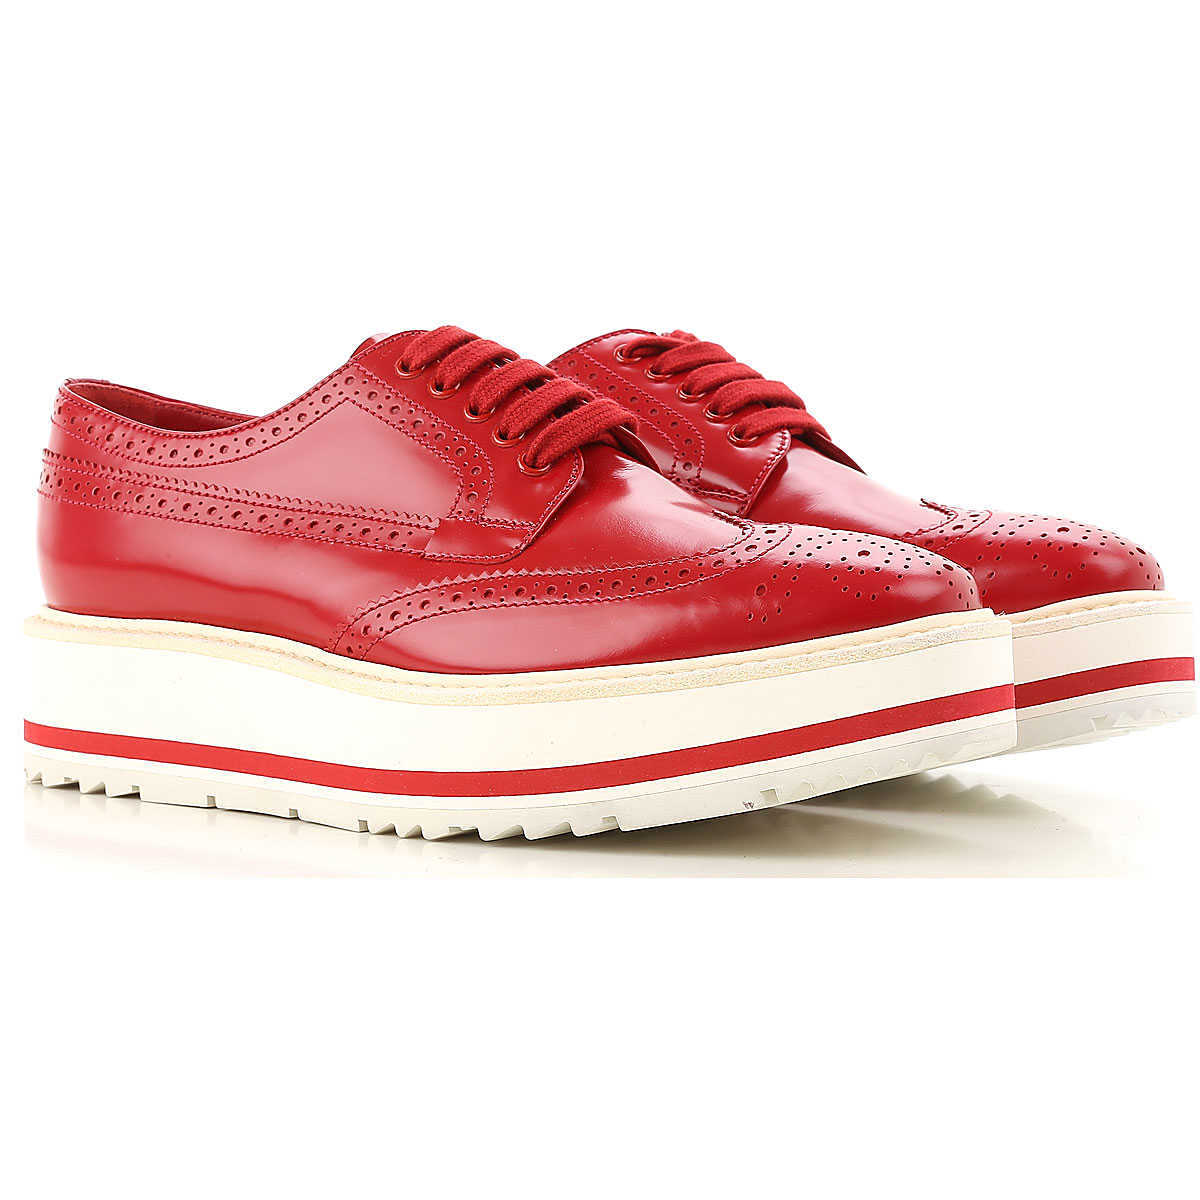 Prada Brogues Oxford Shoes On Sale in Outlet Red Scarlet - GOOFASH